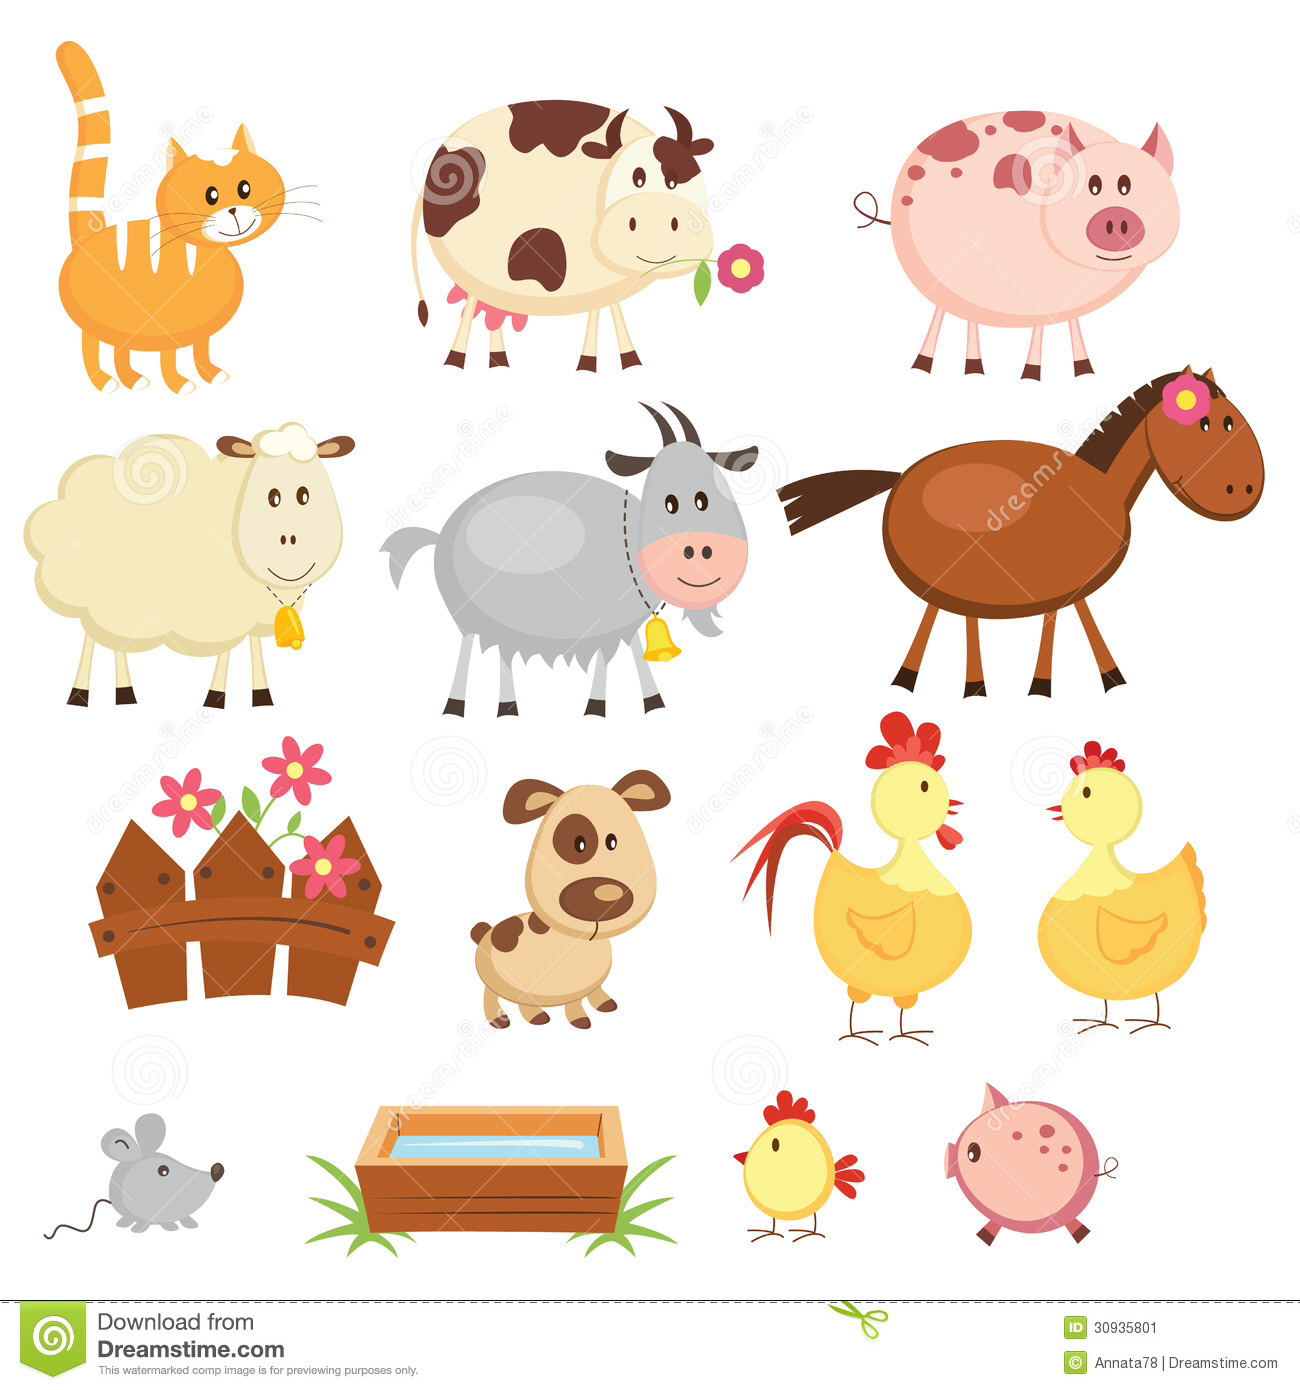 pinterest clipart animals - photo #1